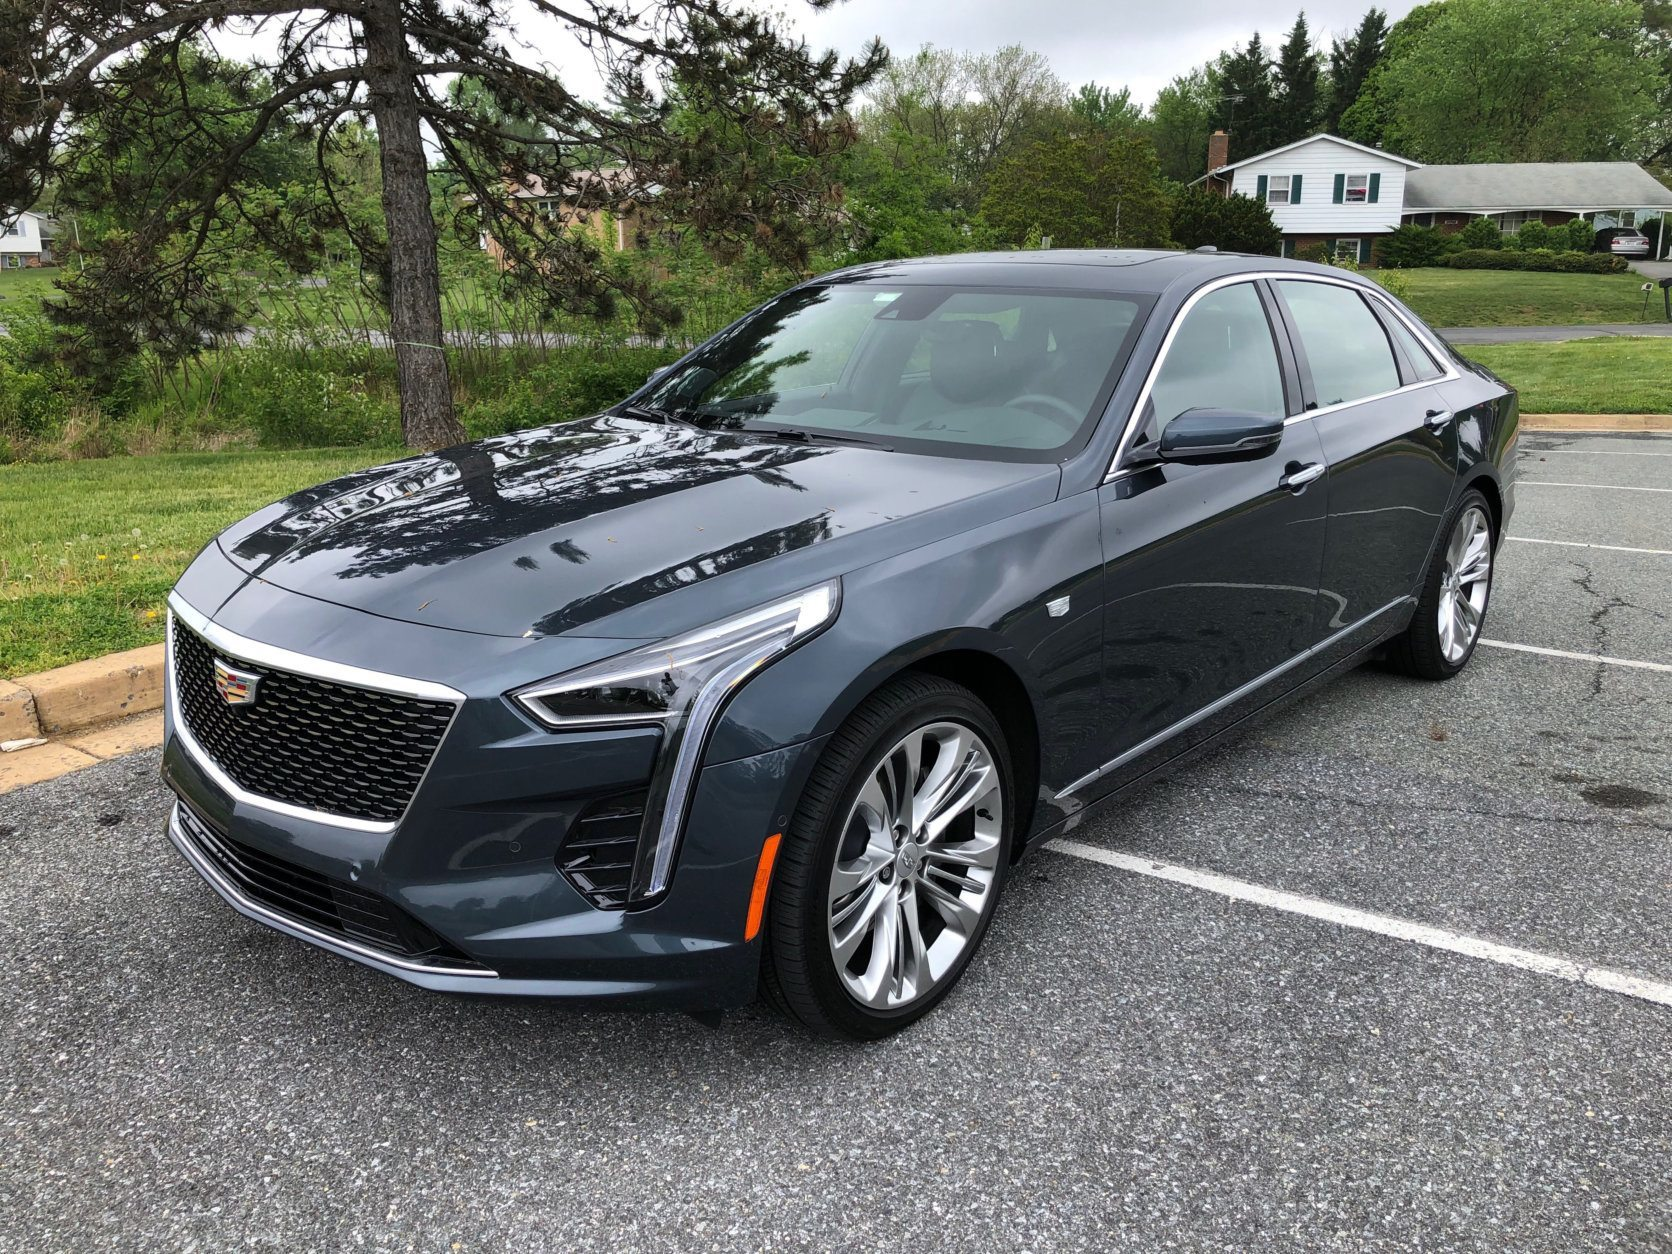 The Cadillac CT6 is cheaper and more fun to drive than the Audi or the Lexus, if not as nice inside. (WTOP/John Aaron)